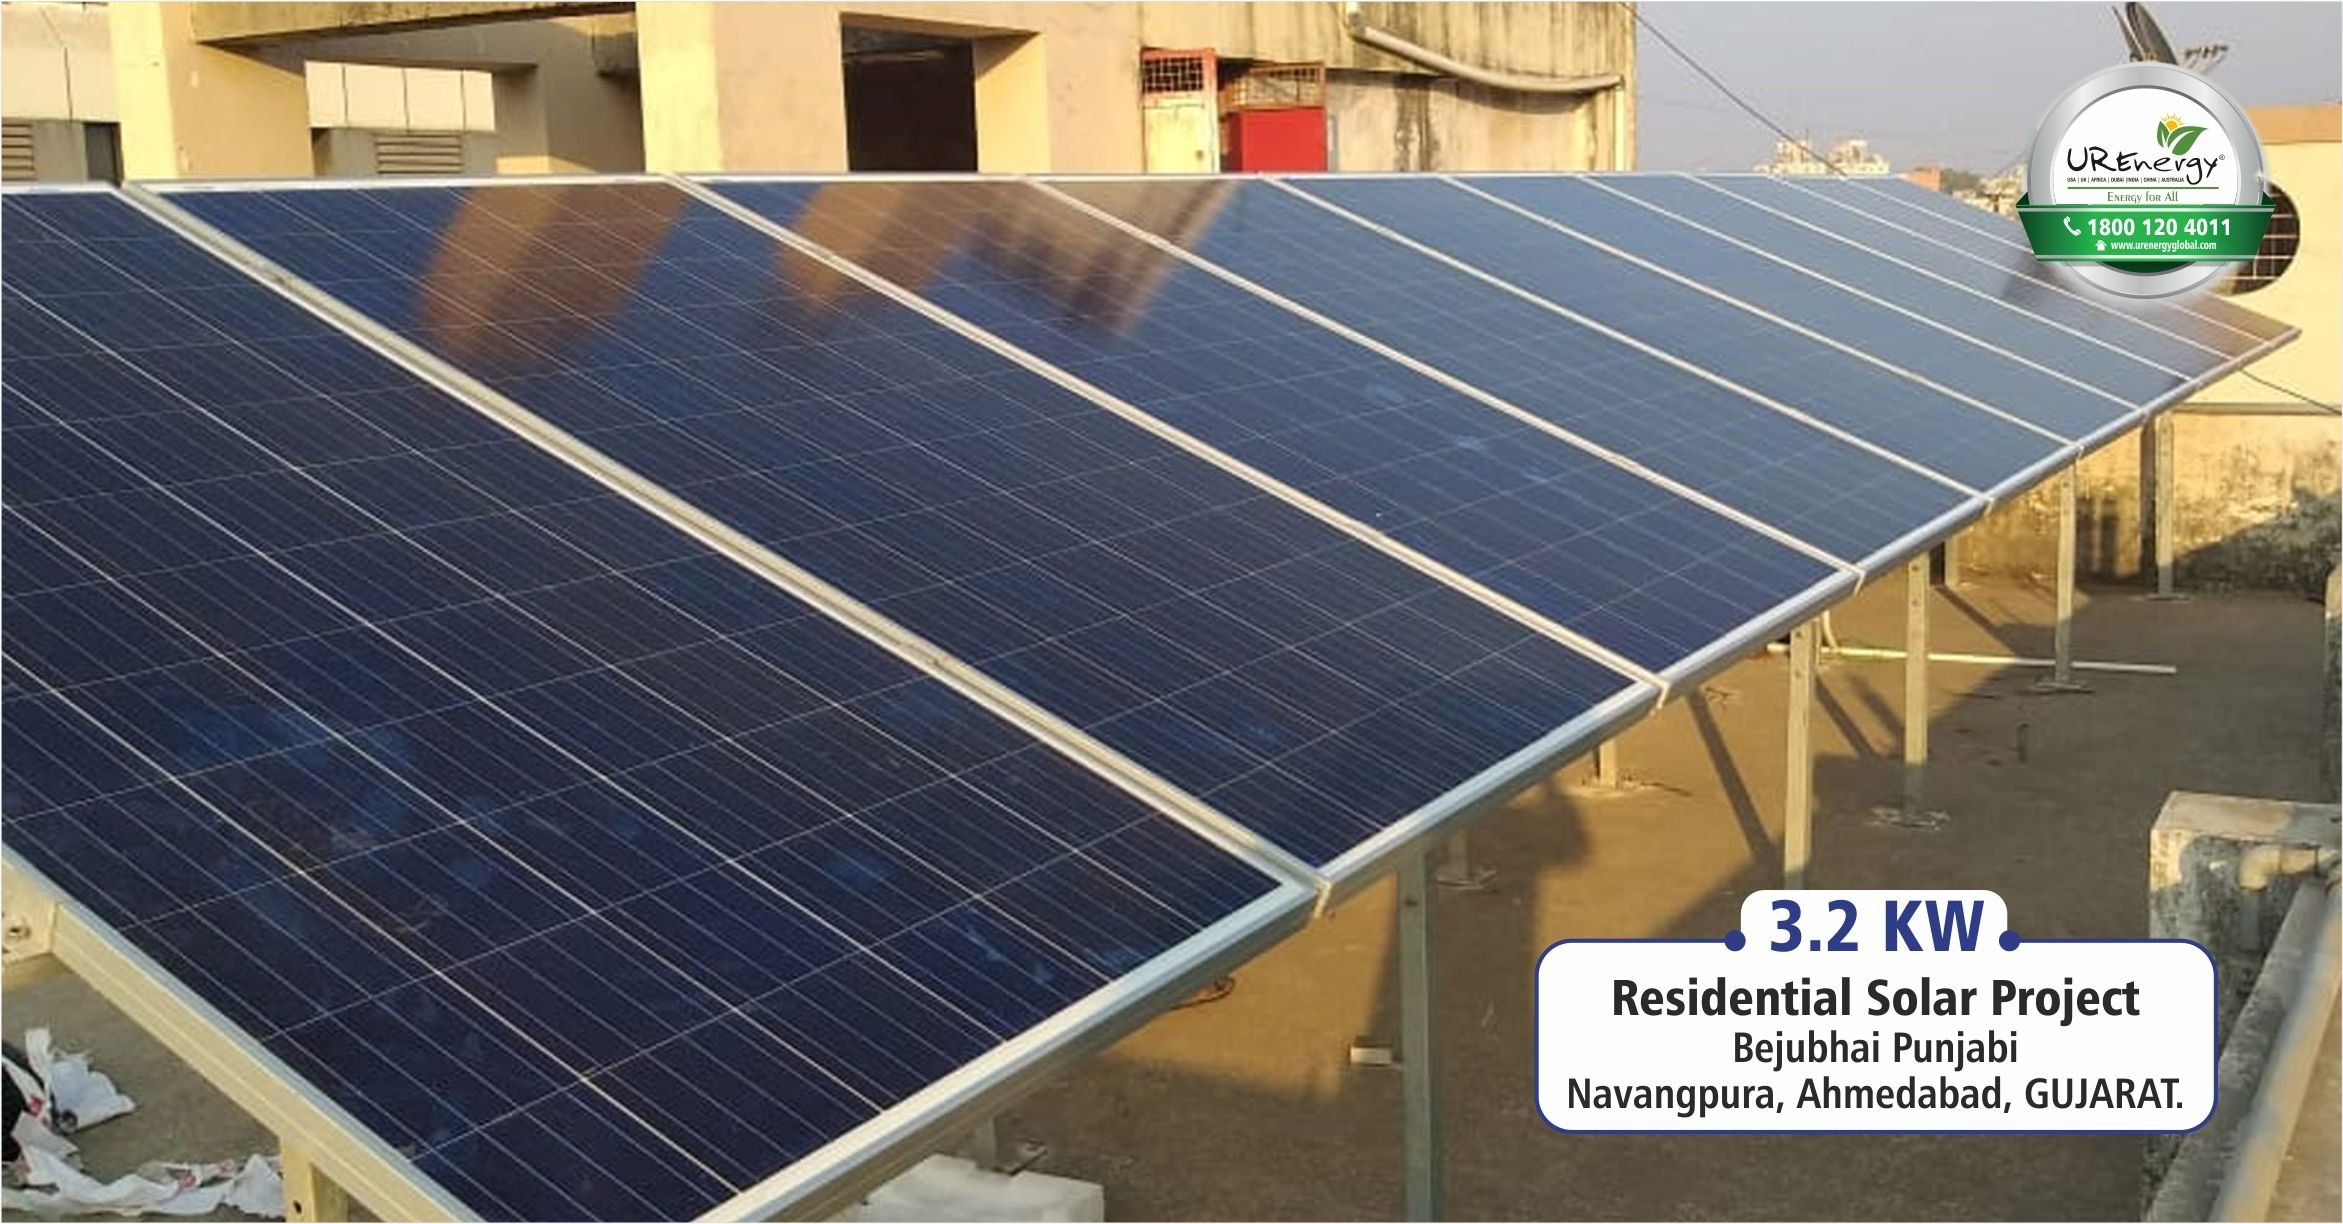 3 2 Kw Residential Rooftop Solar Panel System Installed At Ahmedabad Gujarat India By U R Energy Team For More Info Visit